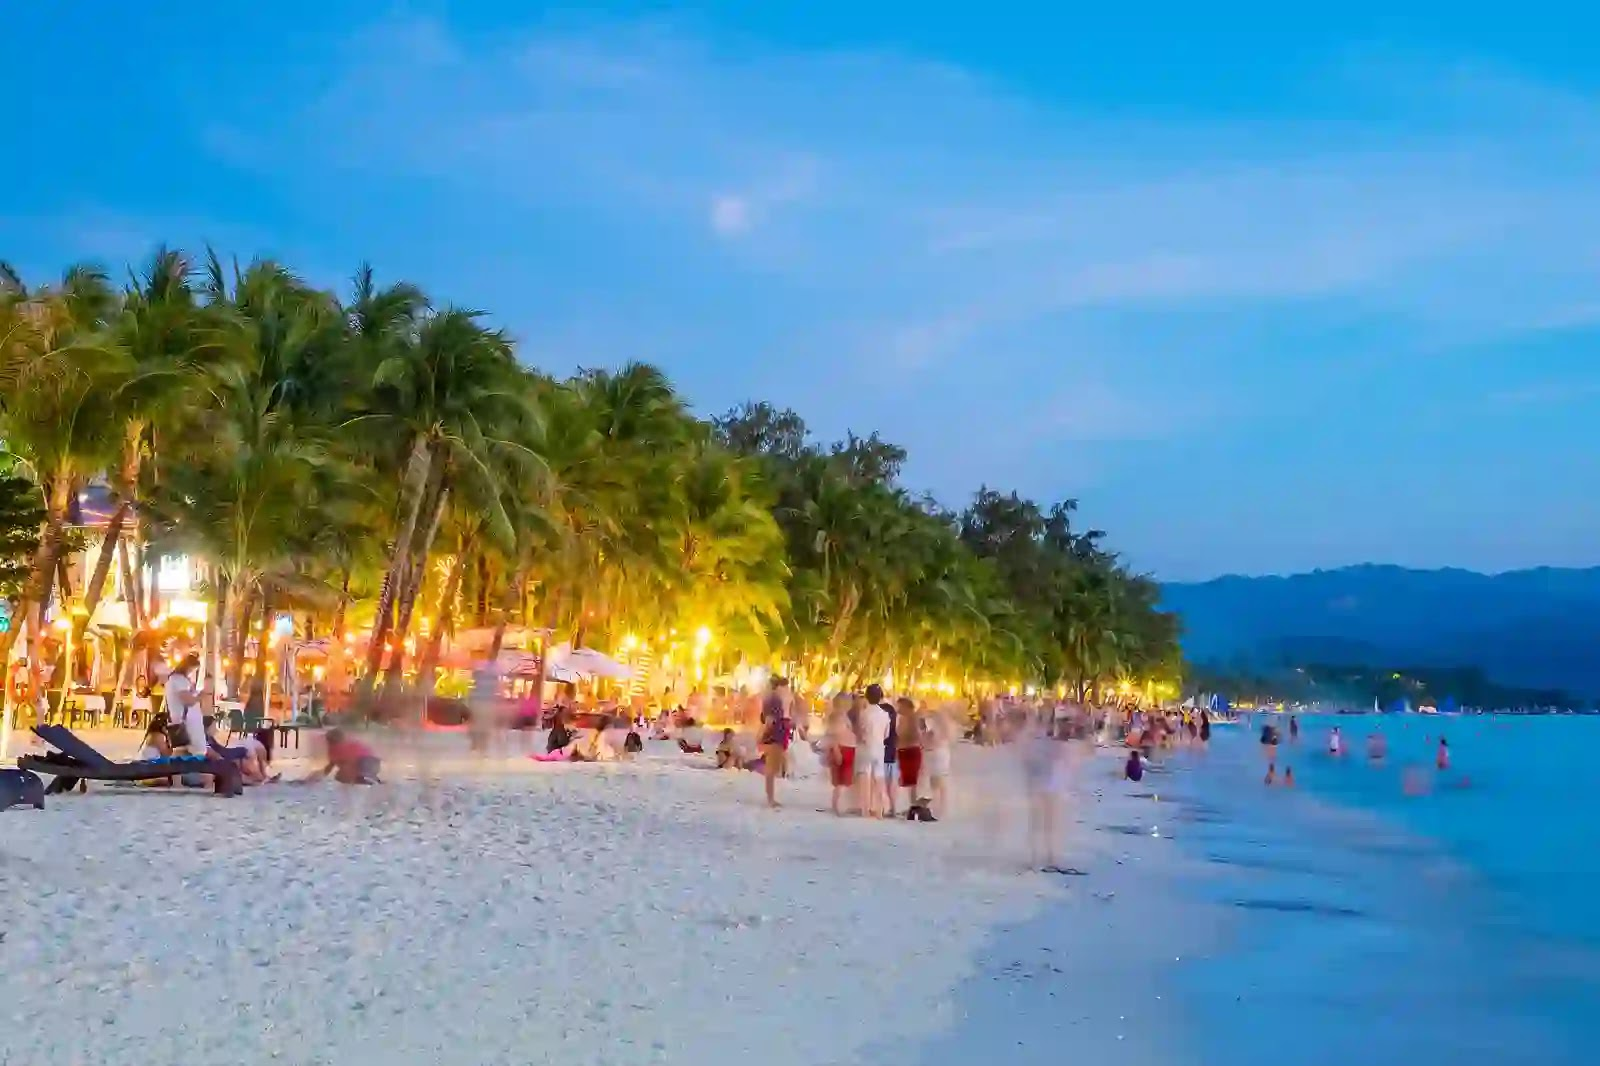 Philippines – For The Love Of Islands